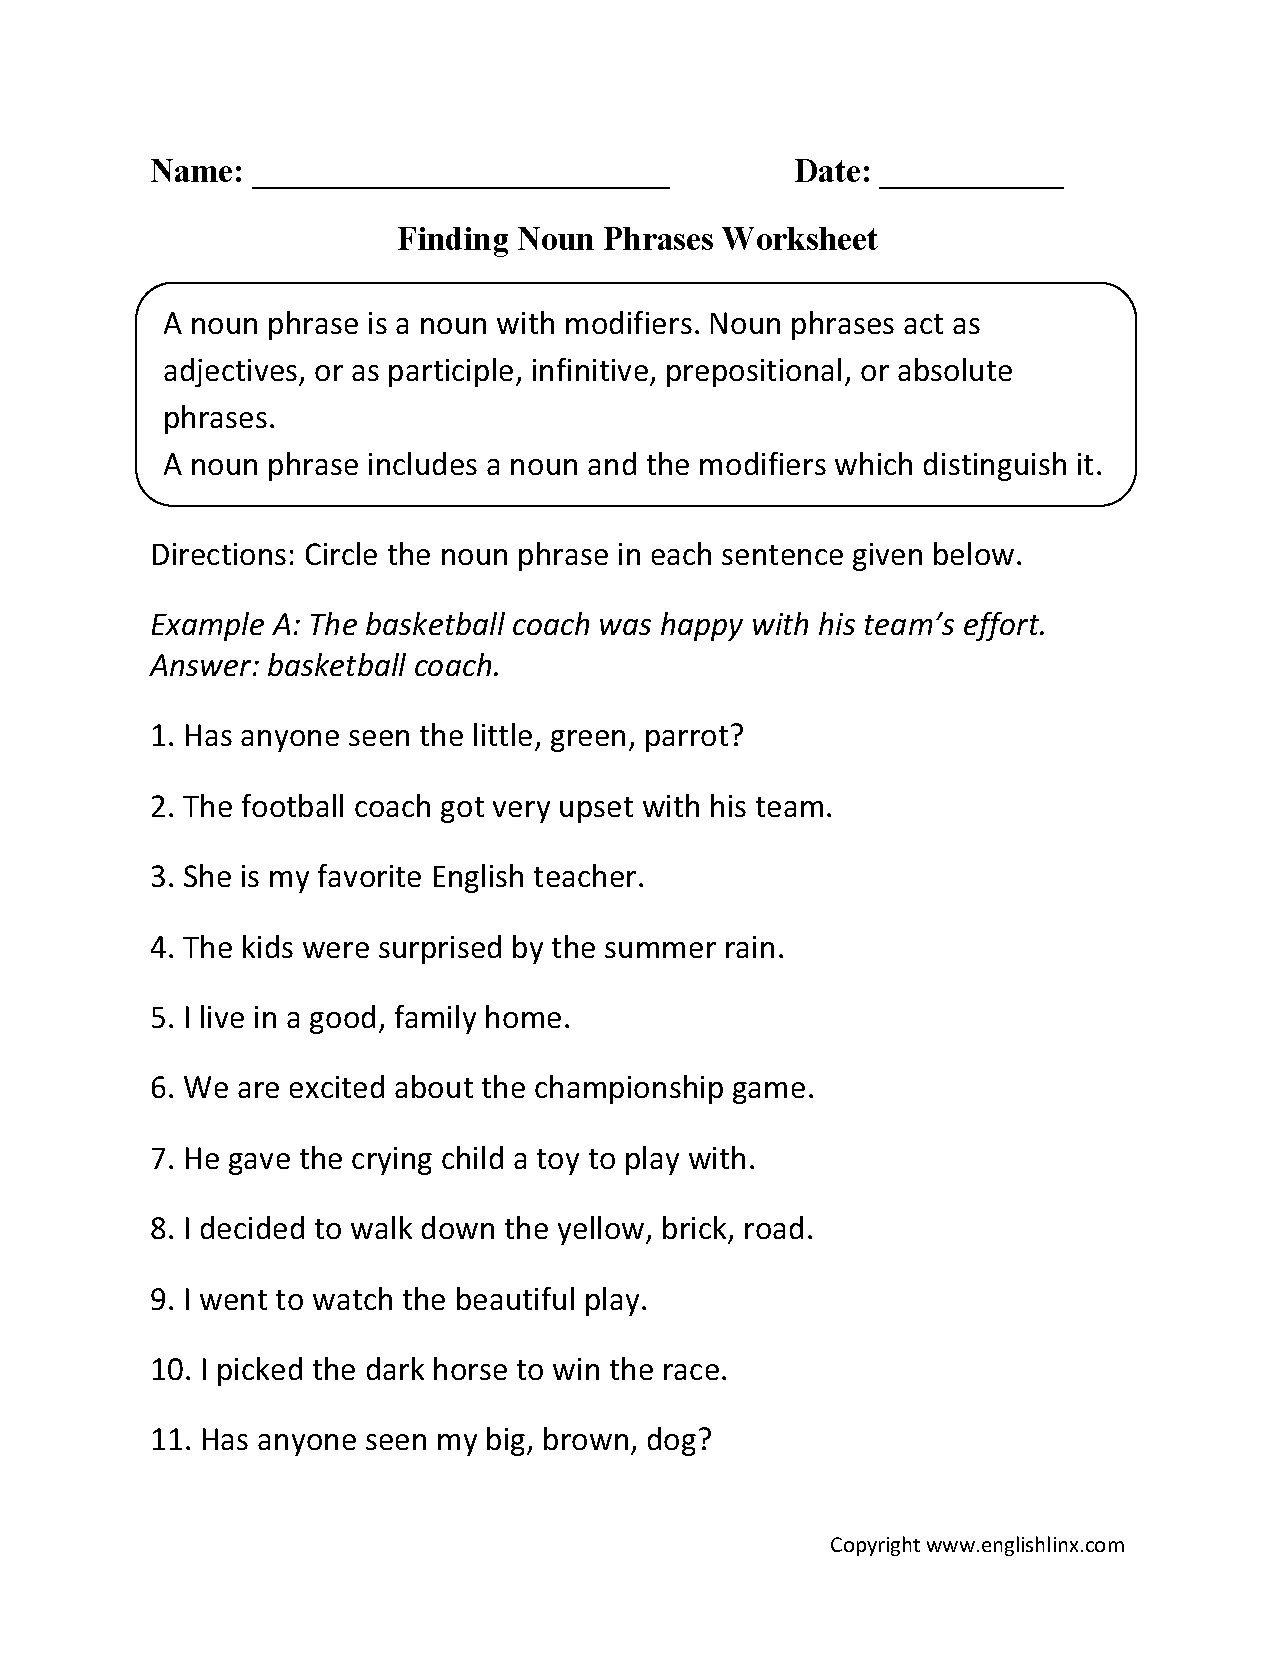 Worksheets Phrases And Clauses Worksheets finding noun phrases worksheets teaching nouns pinterest worksheets